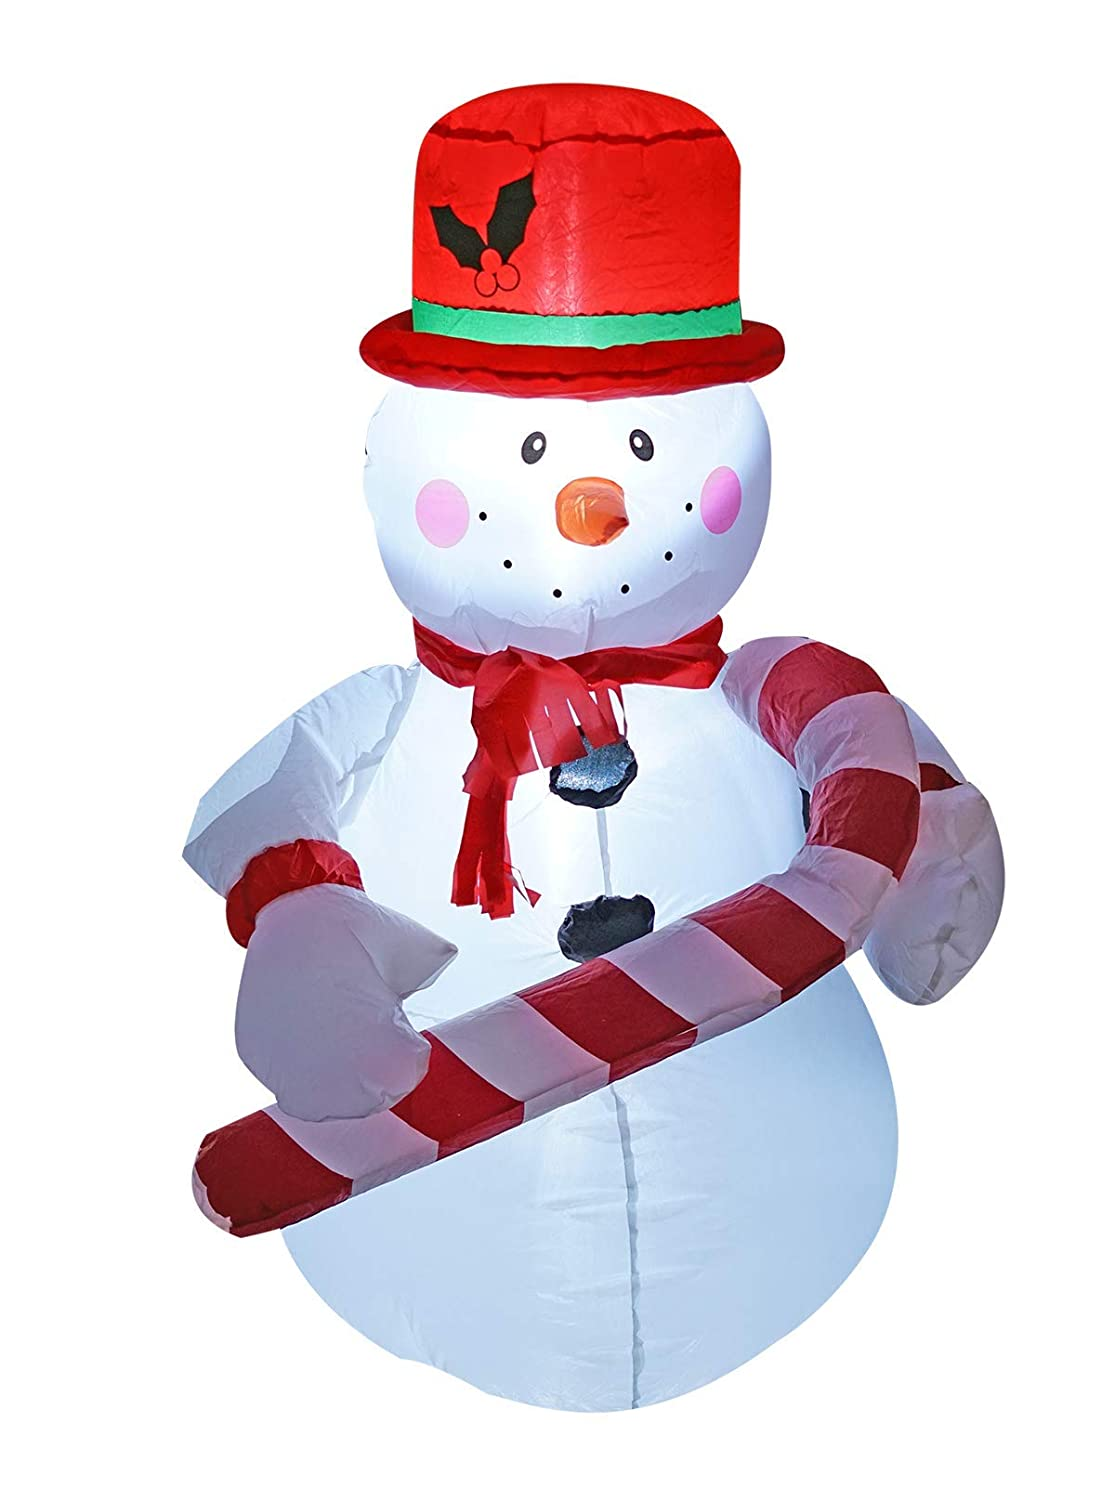 4 Ft Inflatable Christmas Snowman hold a Candy Cane Decoration for Indoors Outdoors Home Yard Lawn Garden Decor JF Deco